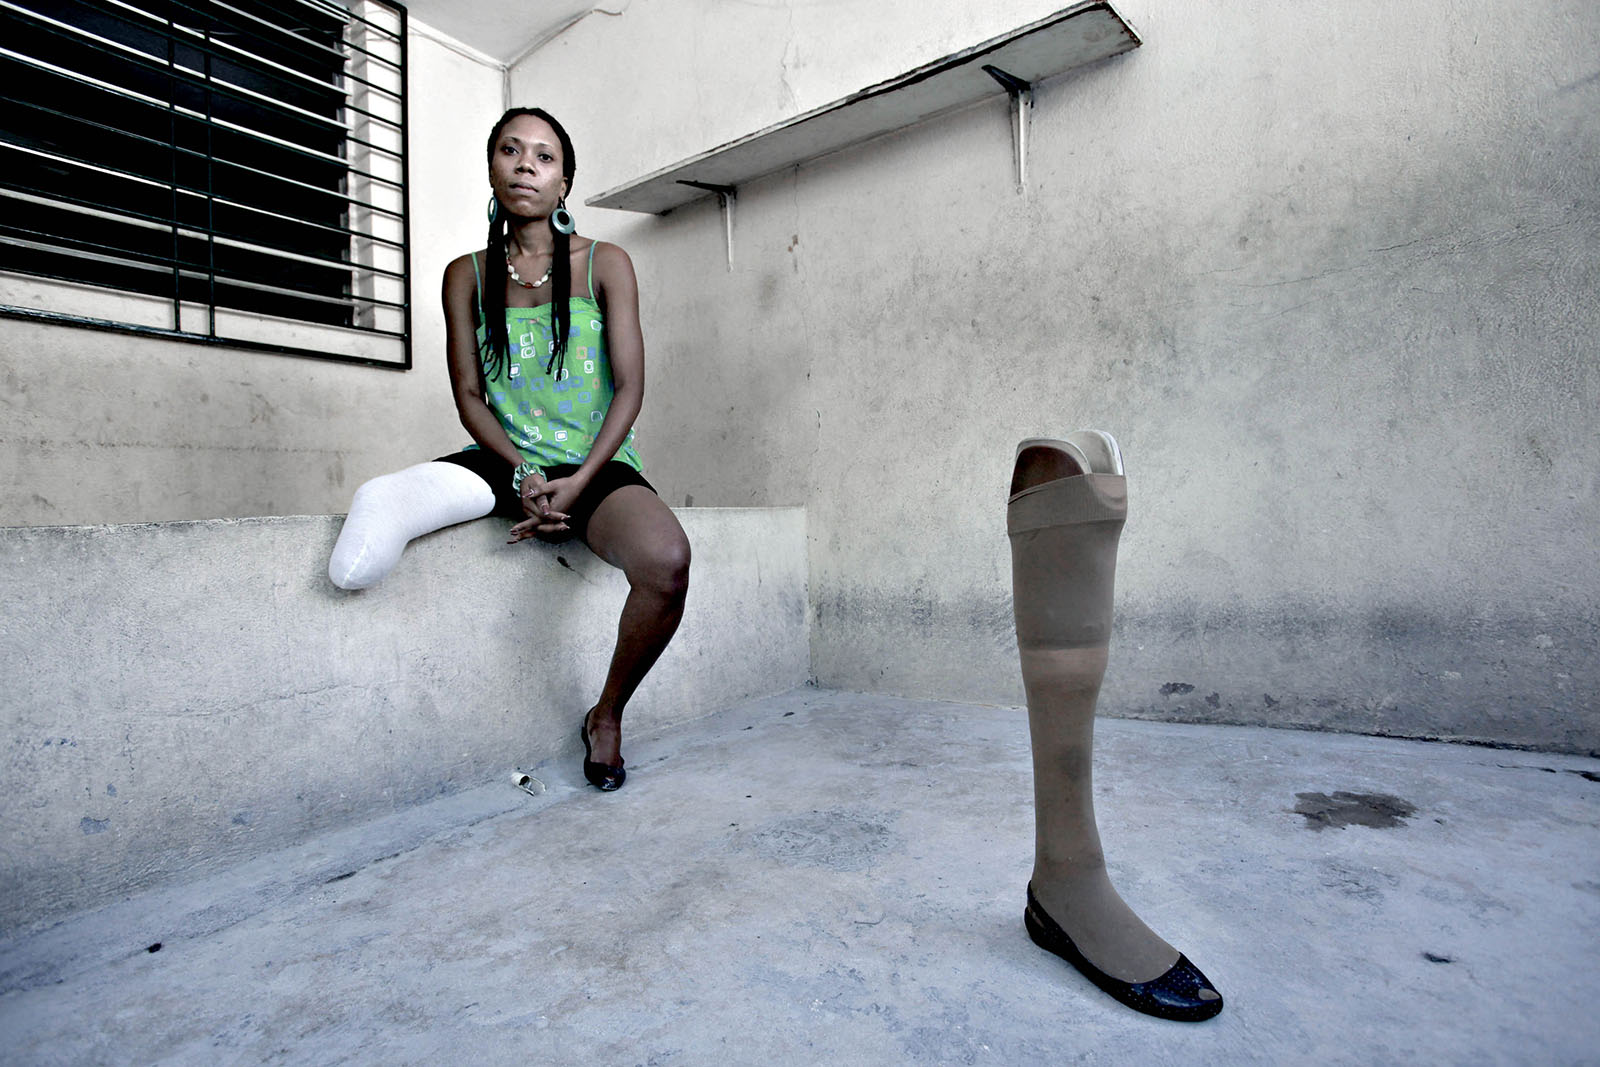 Fabienne worked as a ballet dancer but lost her leg in the earthquake.